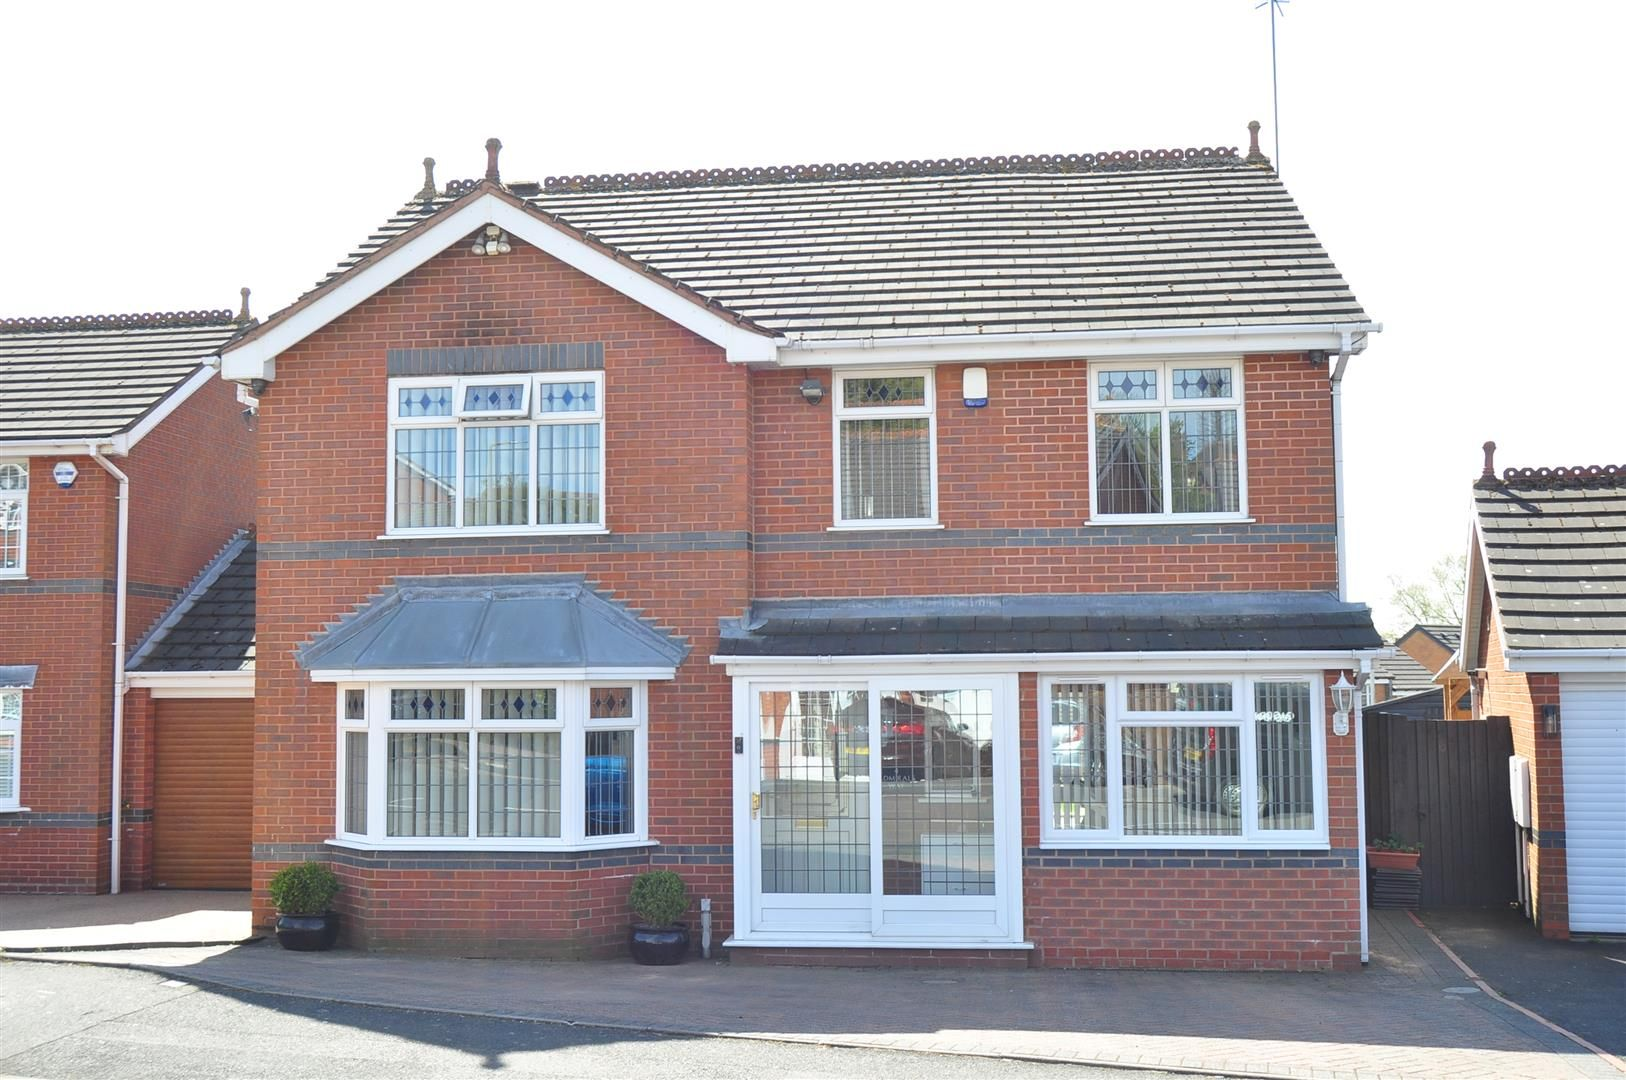 5 bed detached for sale 25